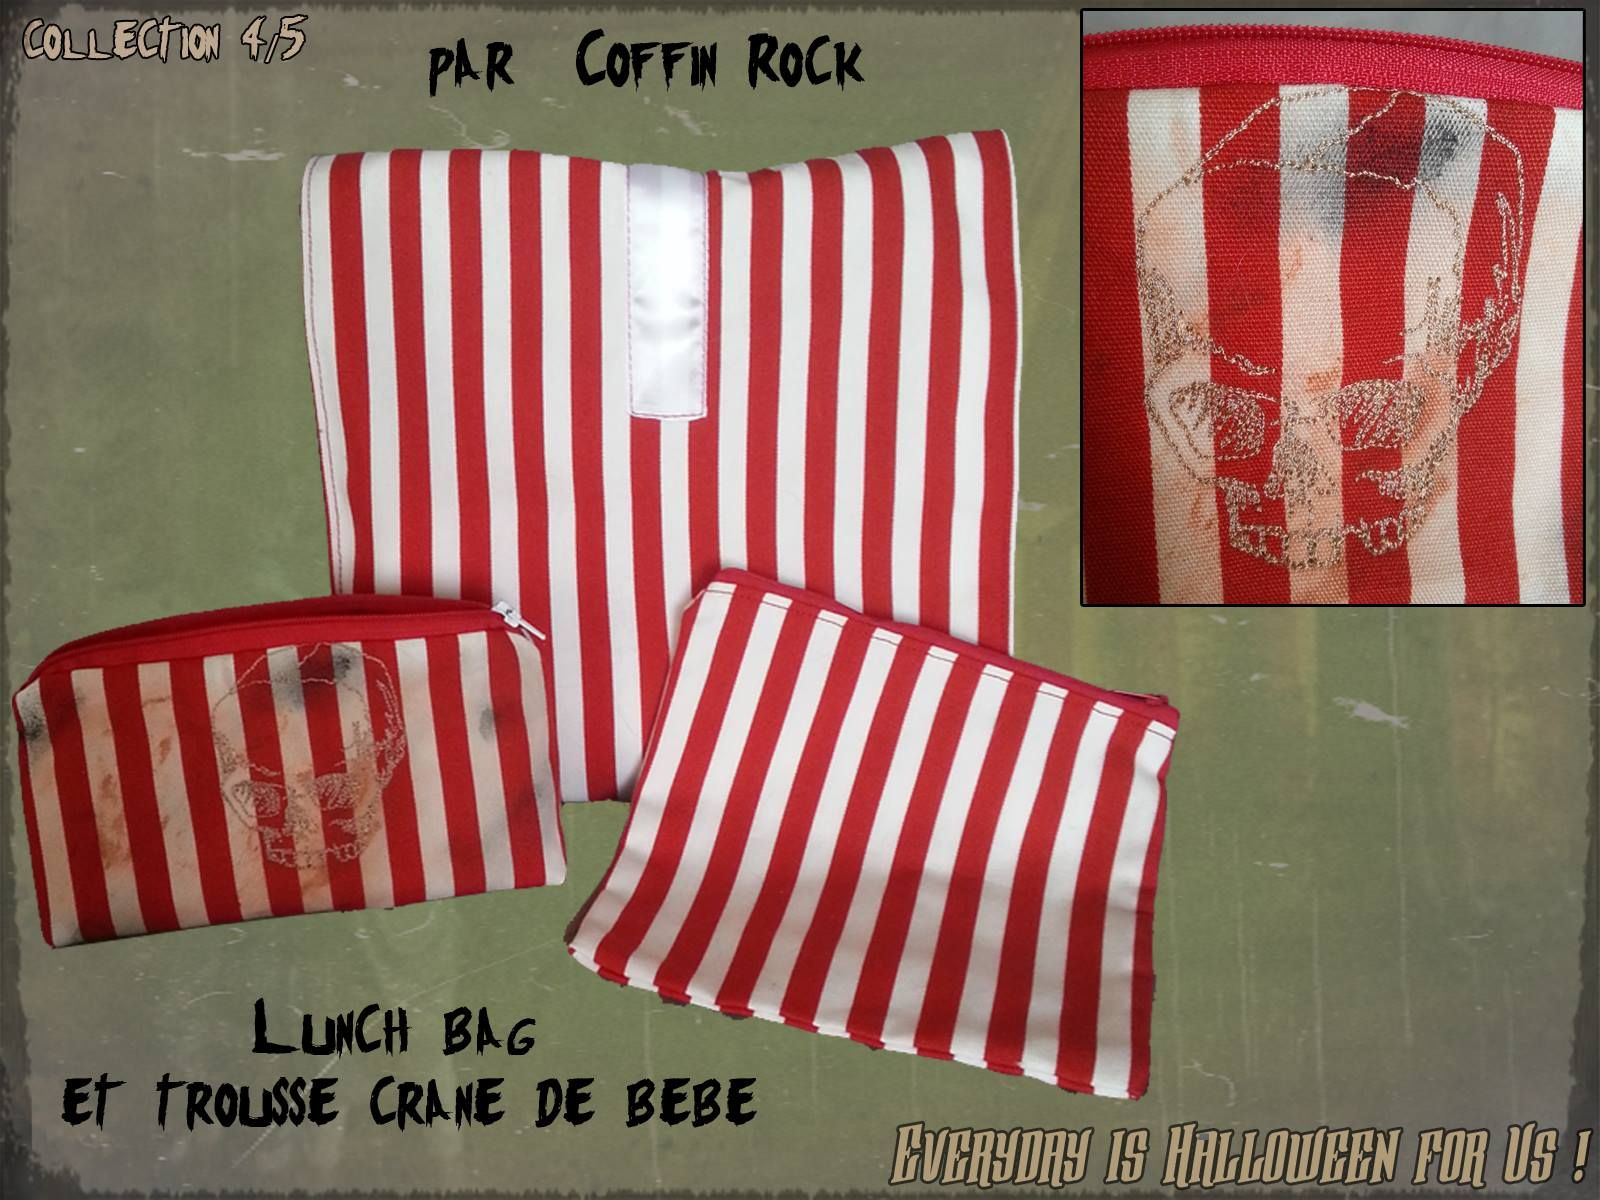 la collection de Coffin Rock  http://www.coffinrock.com/coffinrock/fr/http-coffinrockover-blogorg-categorie-11067250html/1098-trousse-freaky-circus.html